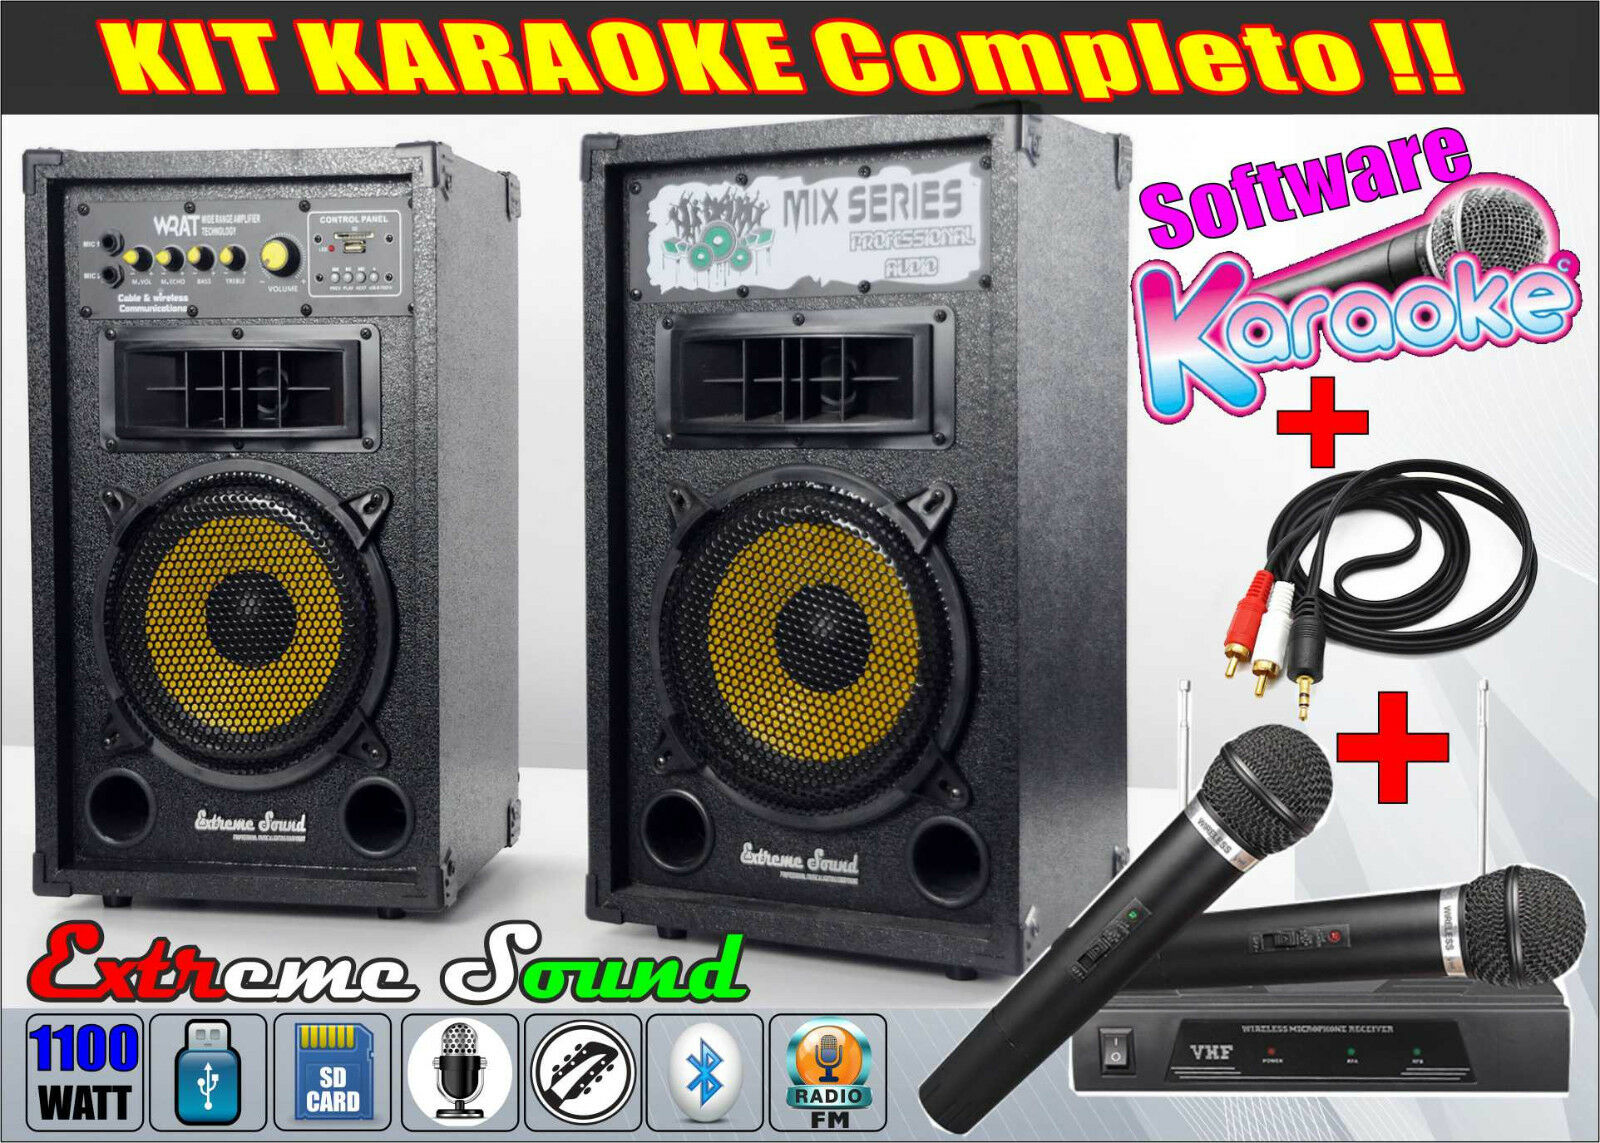 IMPIANTO CASSE KARAOKE 1100W BLUETOOTH RADIO FM+ Microfoni Cavo PC DVD MIX-1-KIT